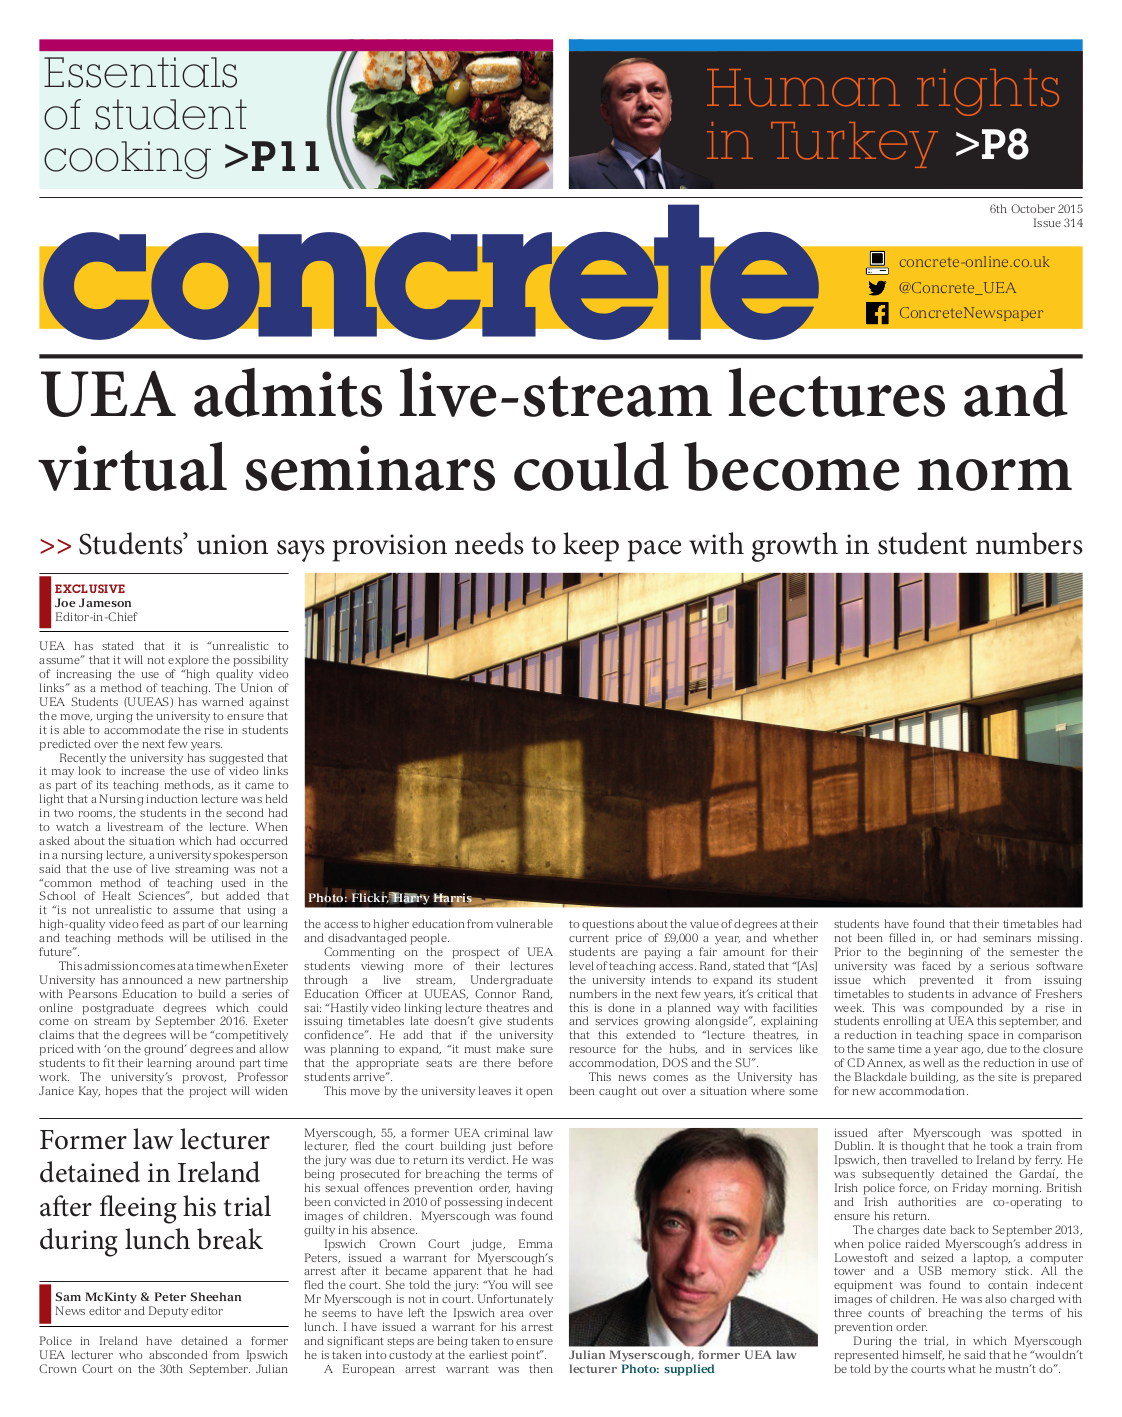 We think the front-page story about the university's admission about using technology to get around spacing issues is important for UEA students to know about.